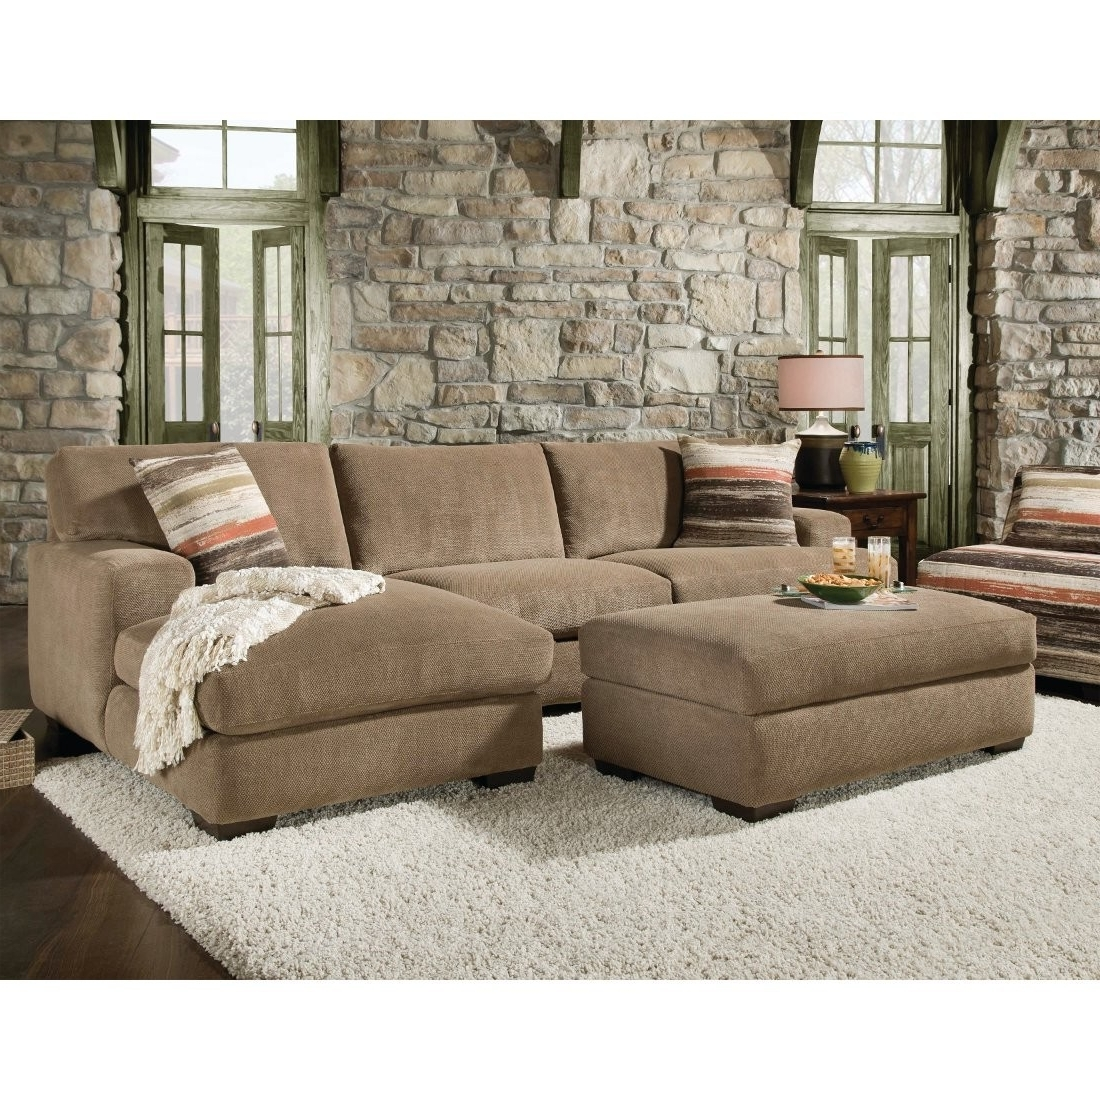 Most Popular Sectional Couches With Chaise With Regard To Beautiful Sectional Sofa With Chaise And Ottoman Pictures (View 4 of 15)